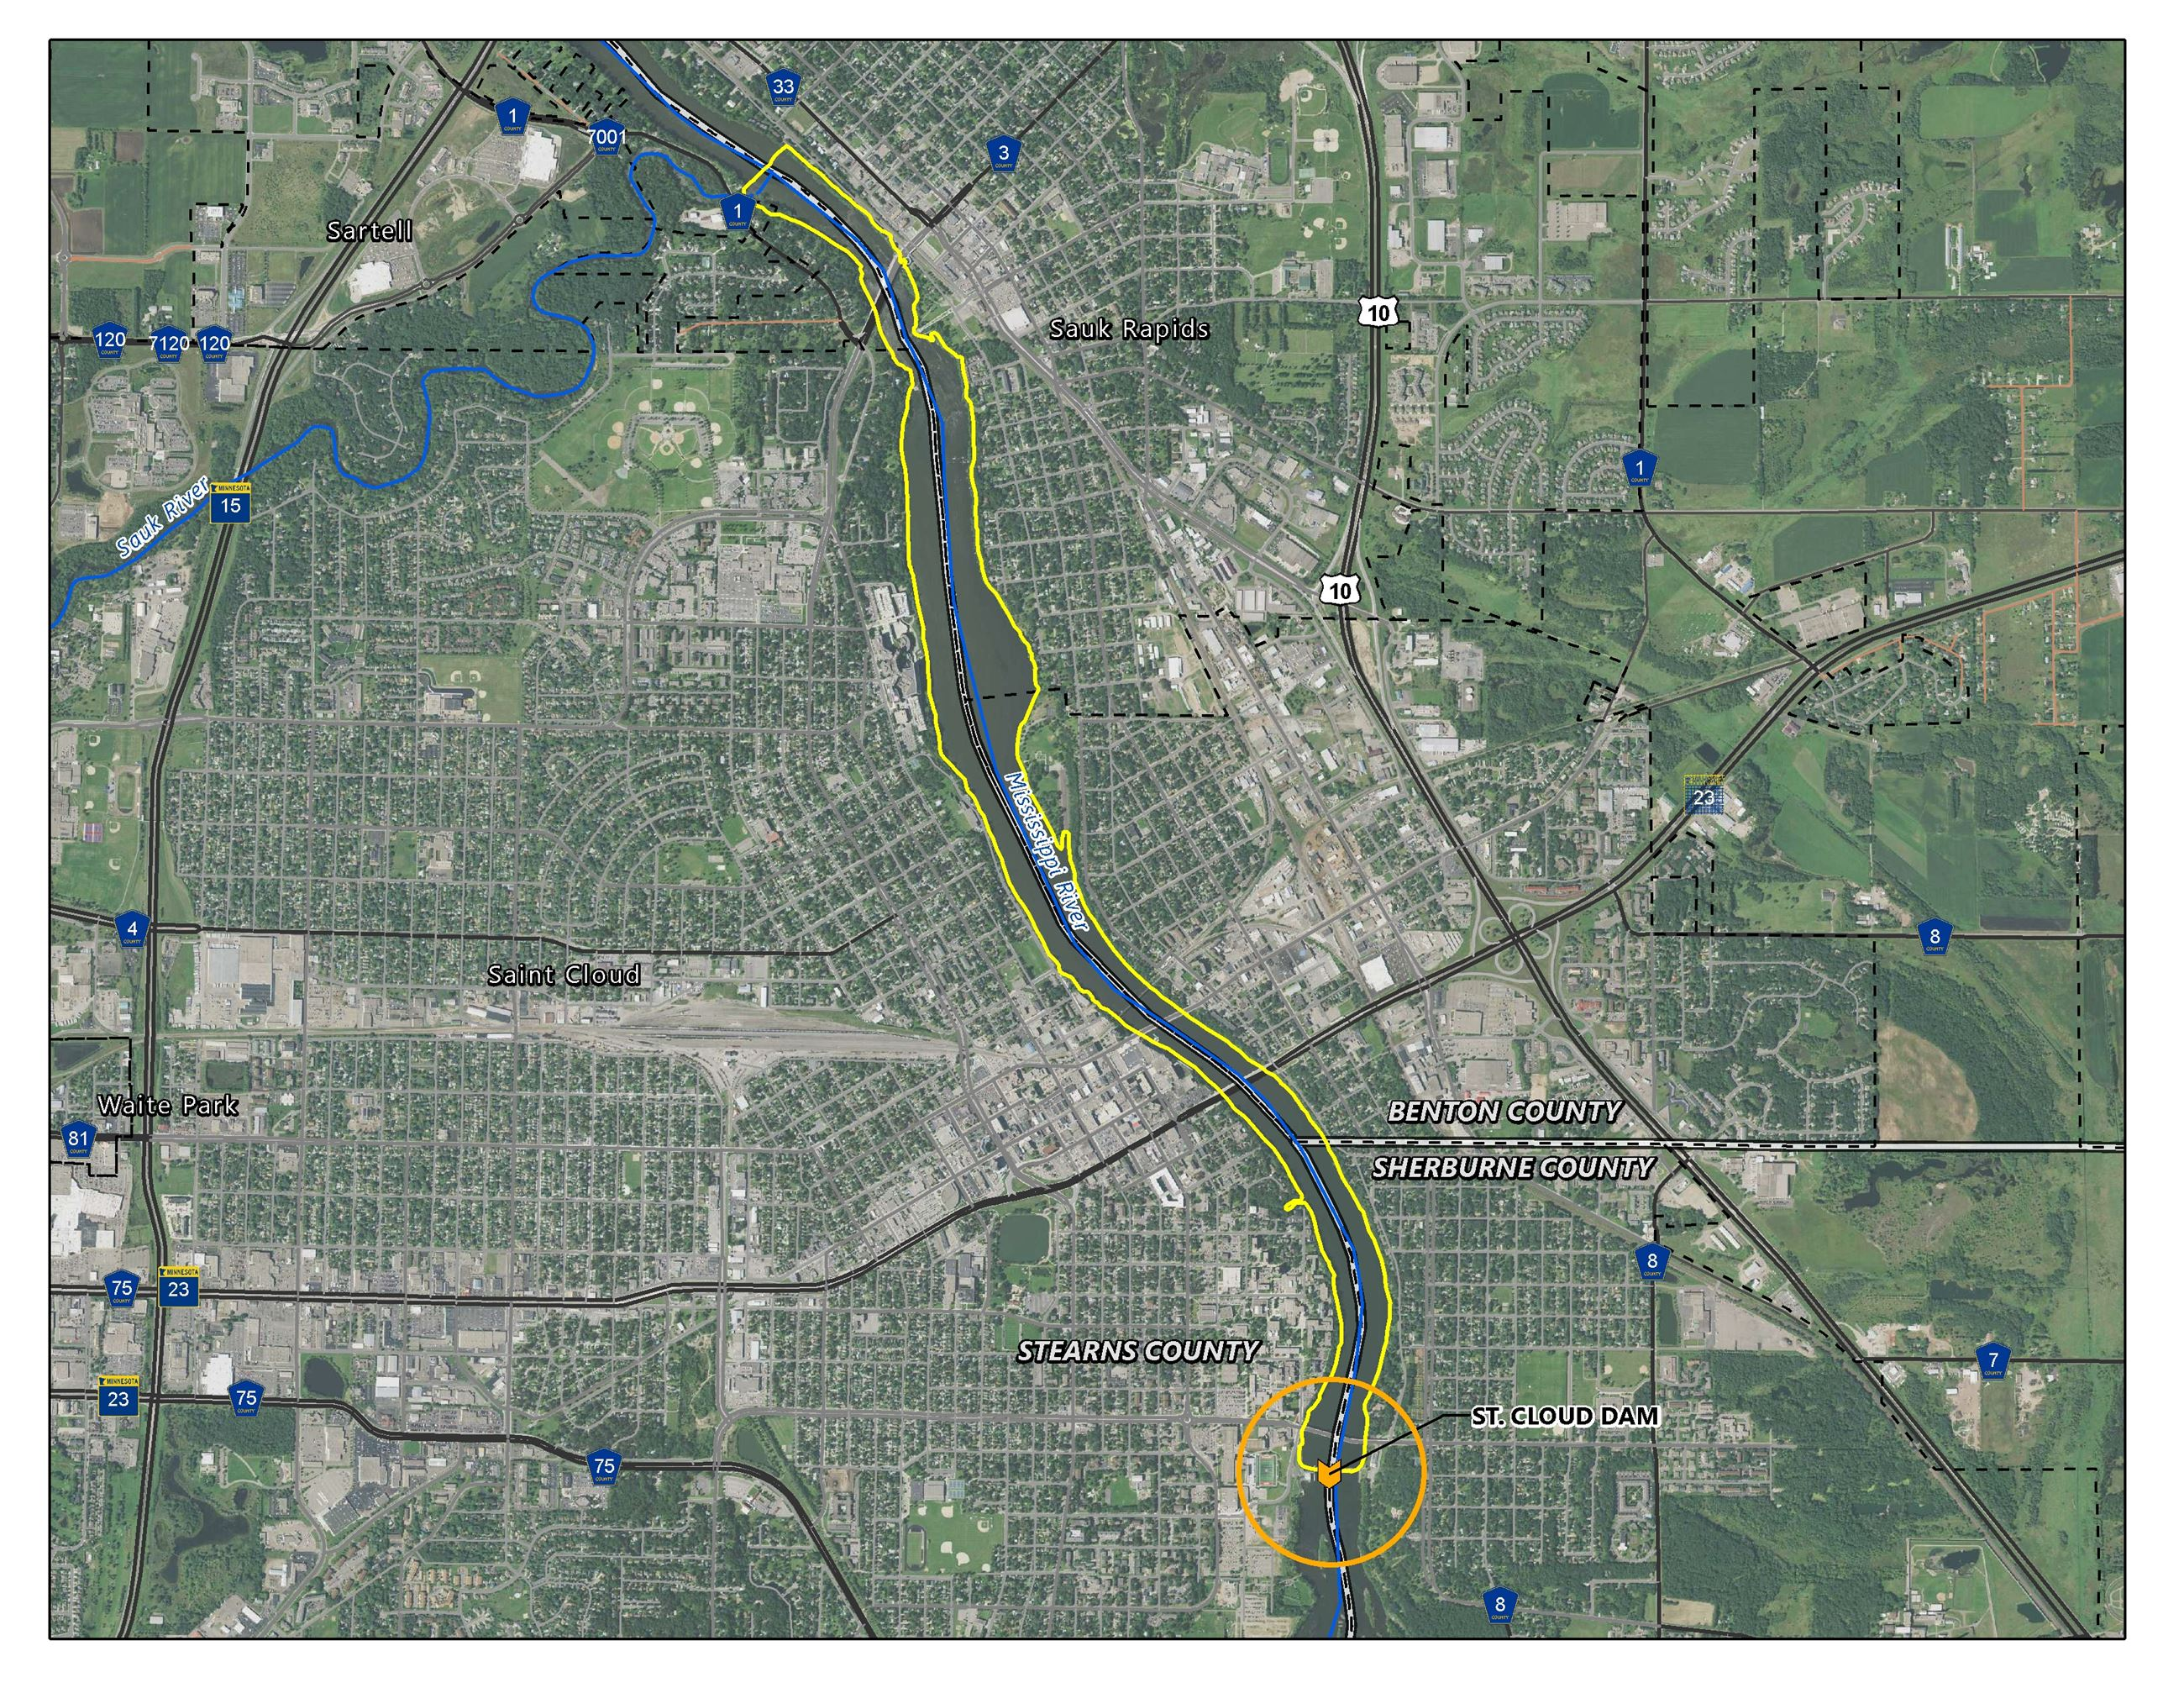 Map of St. Cloud, MN with hydroelectric project location highlighted